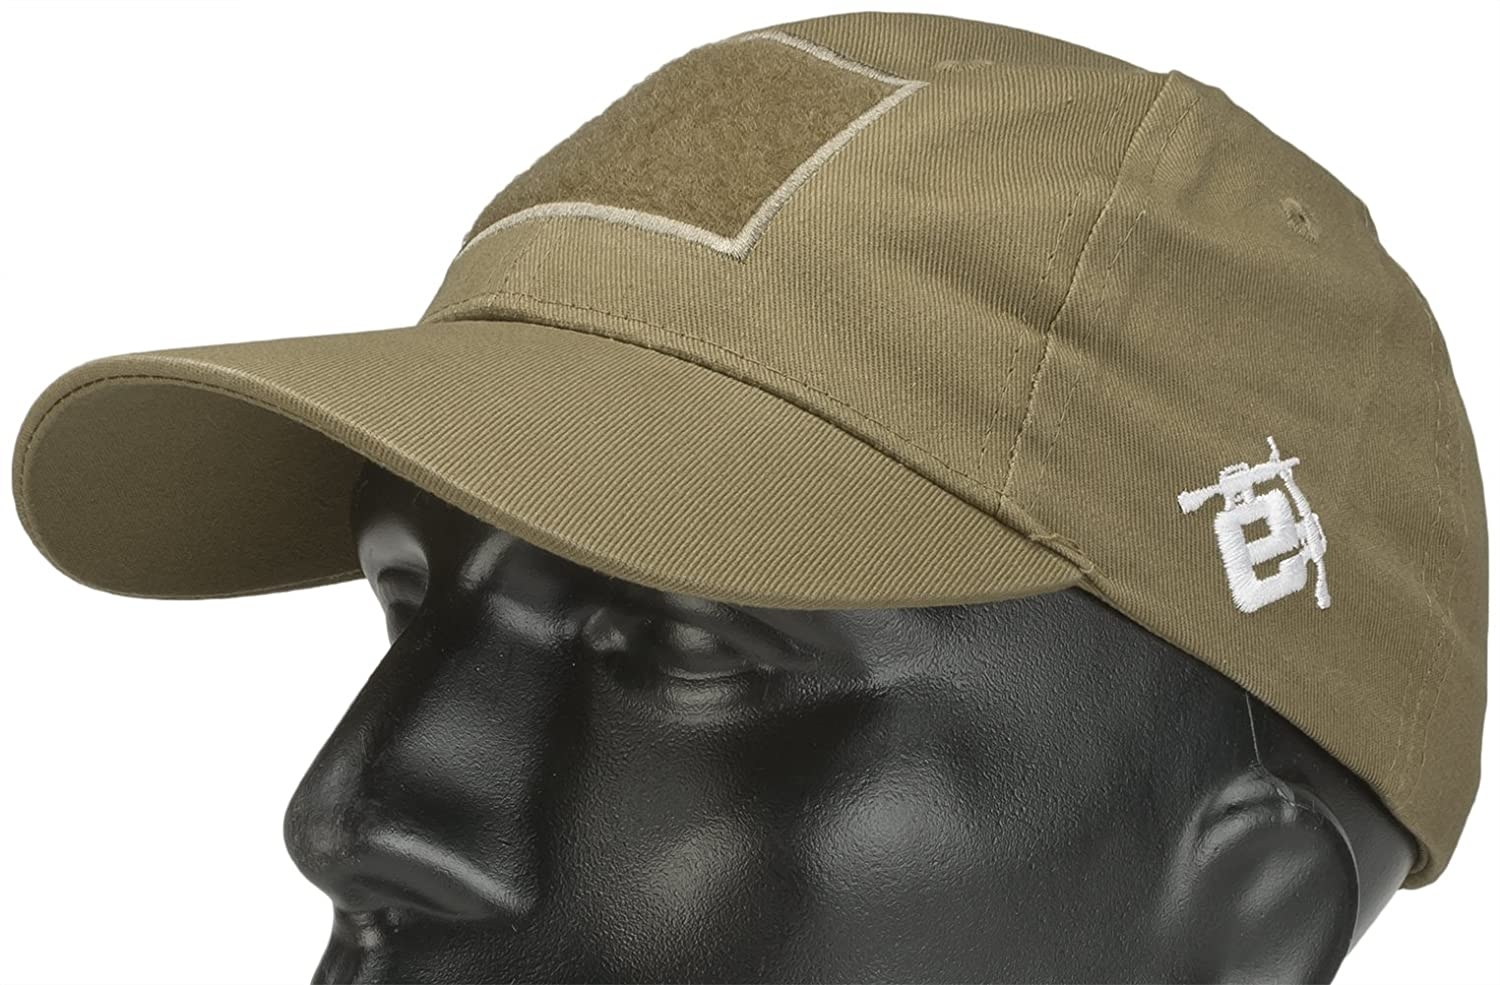 c361009c Amazon.com: Evike Mil-Spec Patch Ready Tactical Ball Cap - Tan - (29740):  Sports & Outdoors